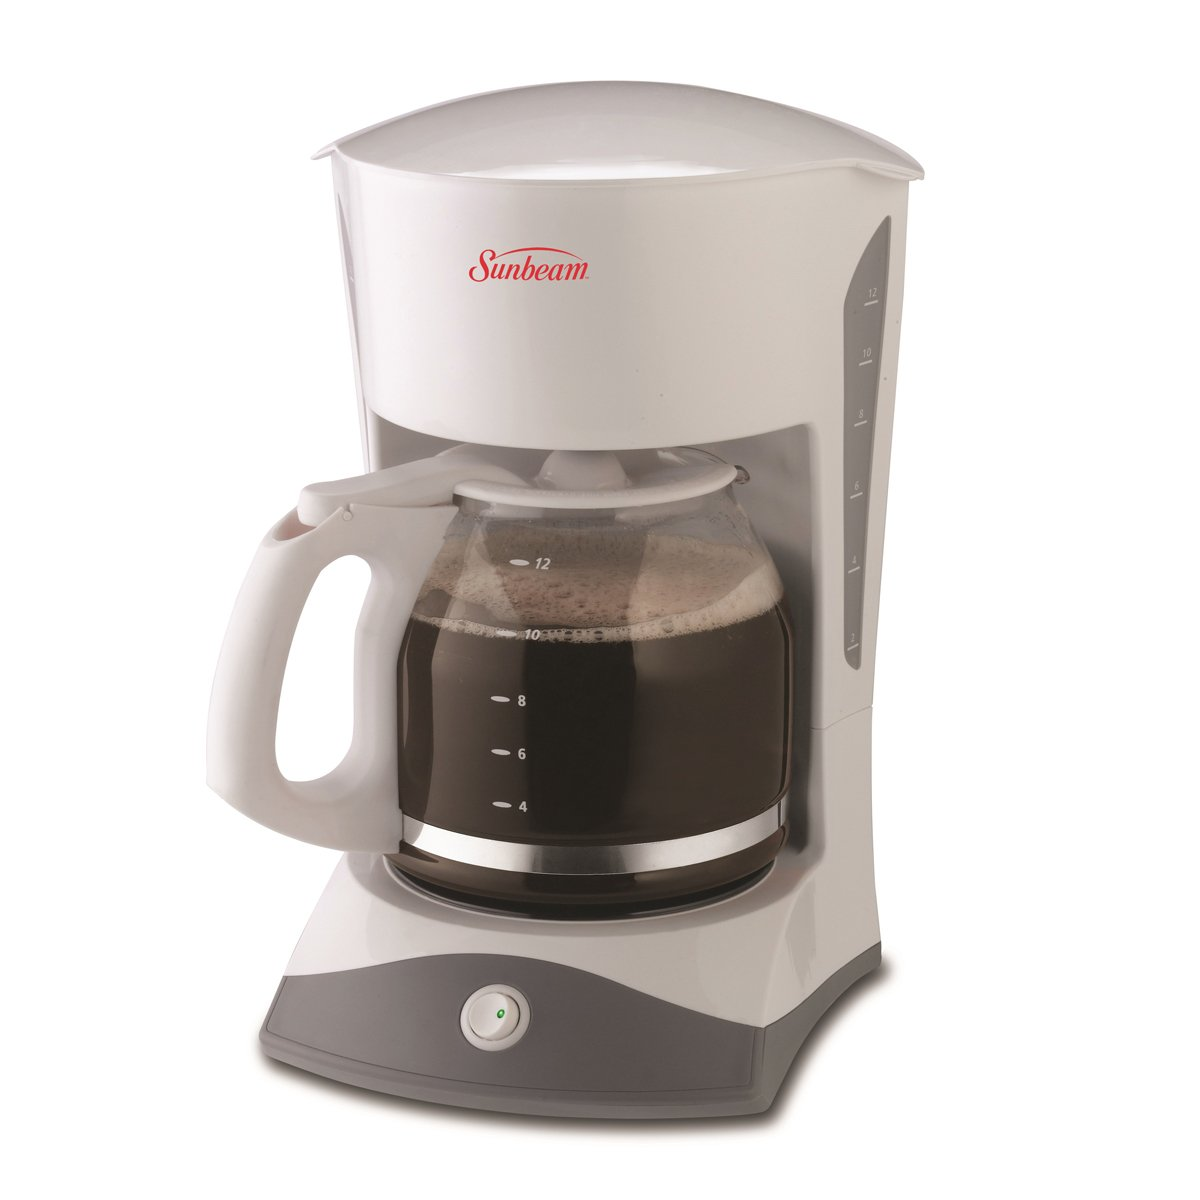 Sunbeam 12 cup switch coffeemaker white 6971 033 Coffee maker brands